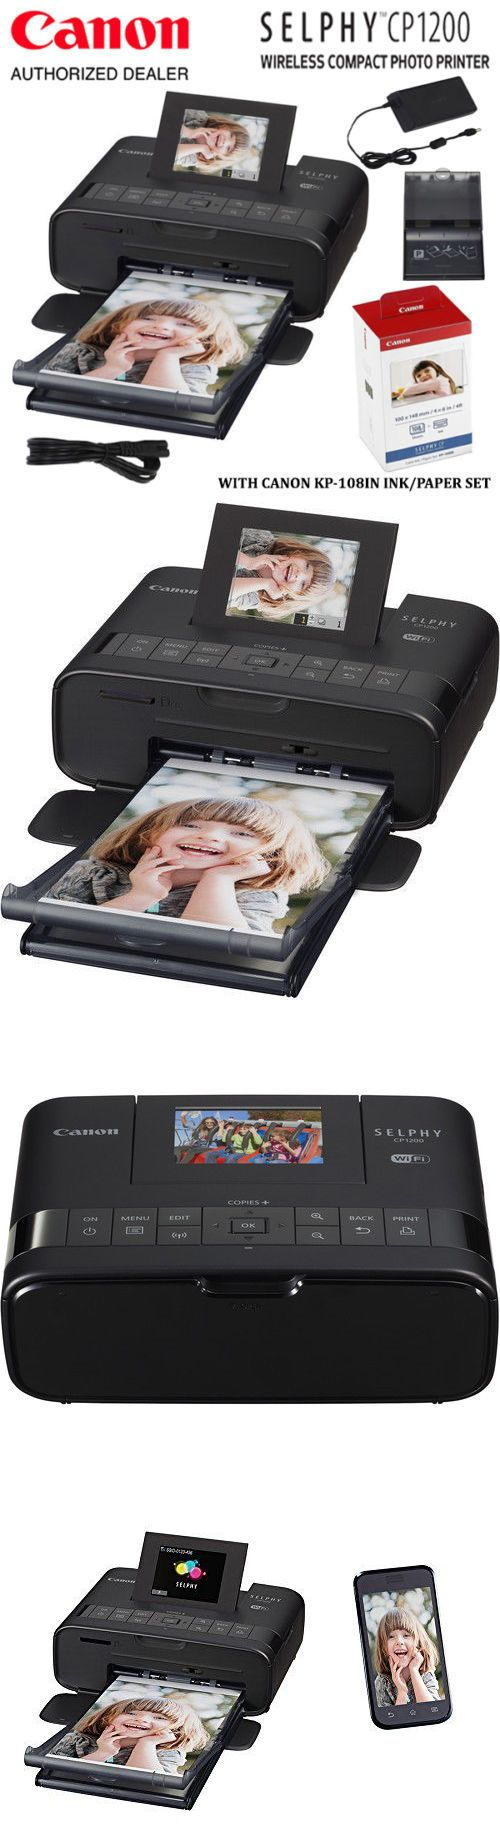 computers: Canon Selphy Cp1200 Wireless Compact Photo Printer And 108 Sheets Print Kit Bundle -> BUY IT NOW ONLY: $129.99 on eBay!